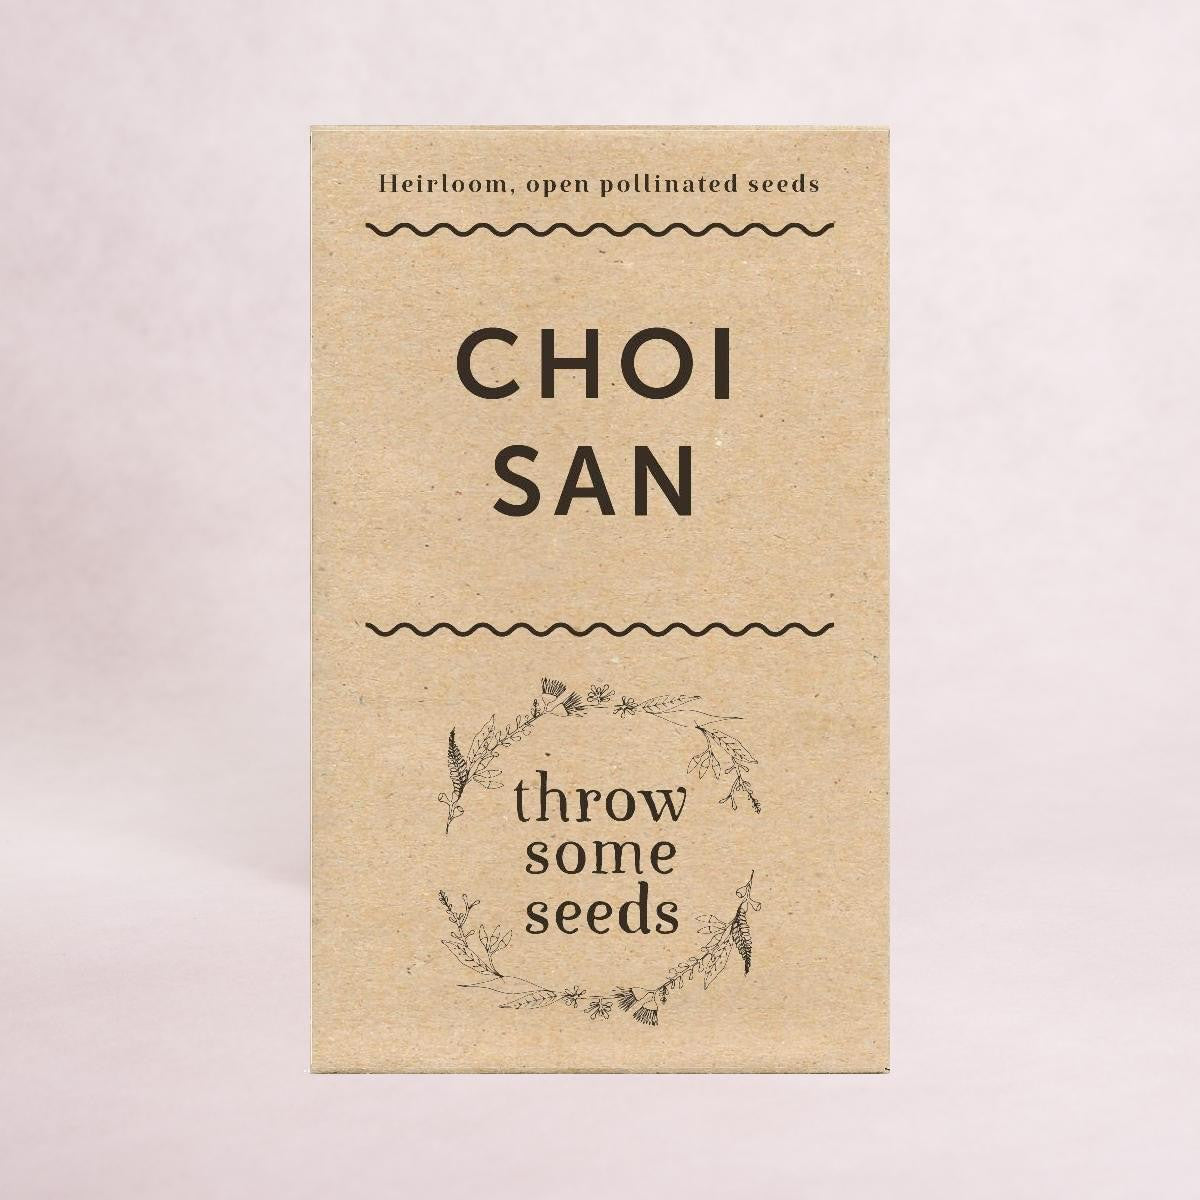 Choi San Seeds - Seeds - Throw Some Seeds - Australian gardening gifts and eco products online!